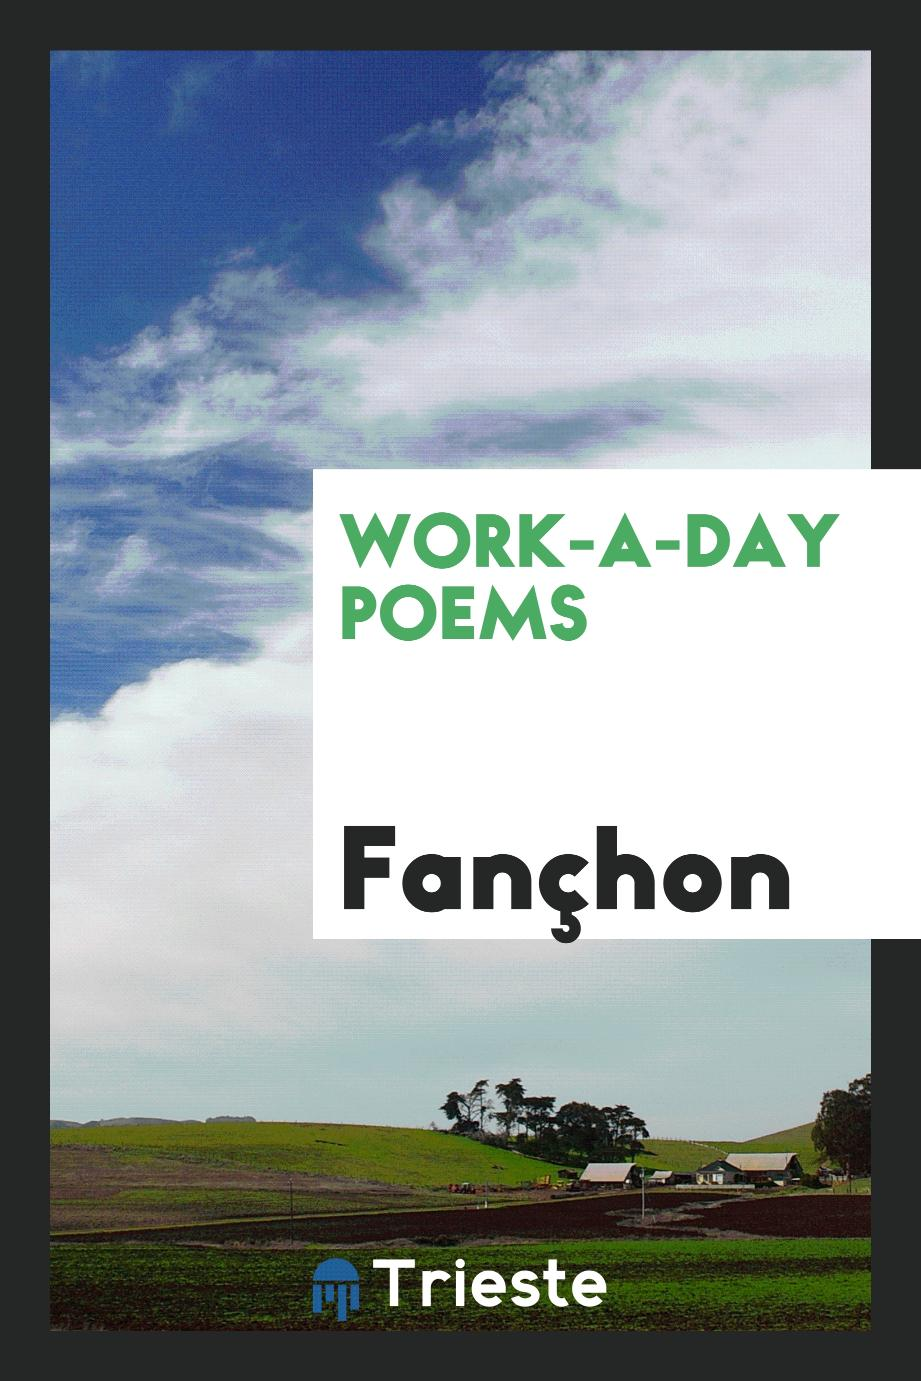 Work-a-day poems